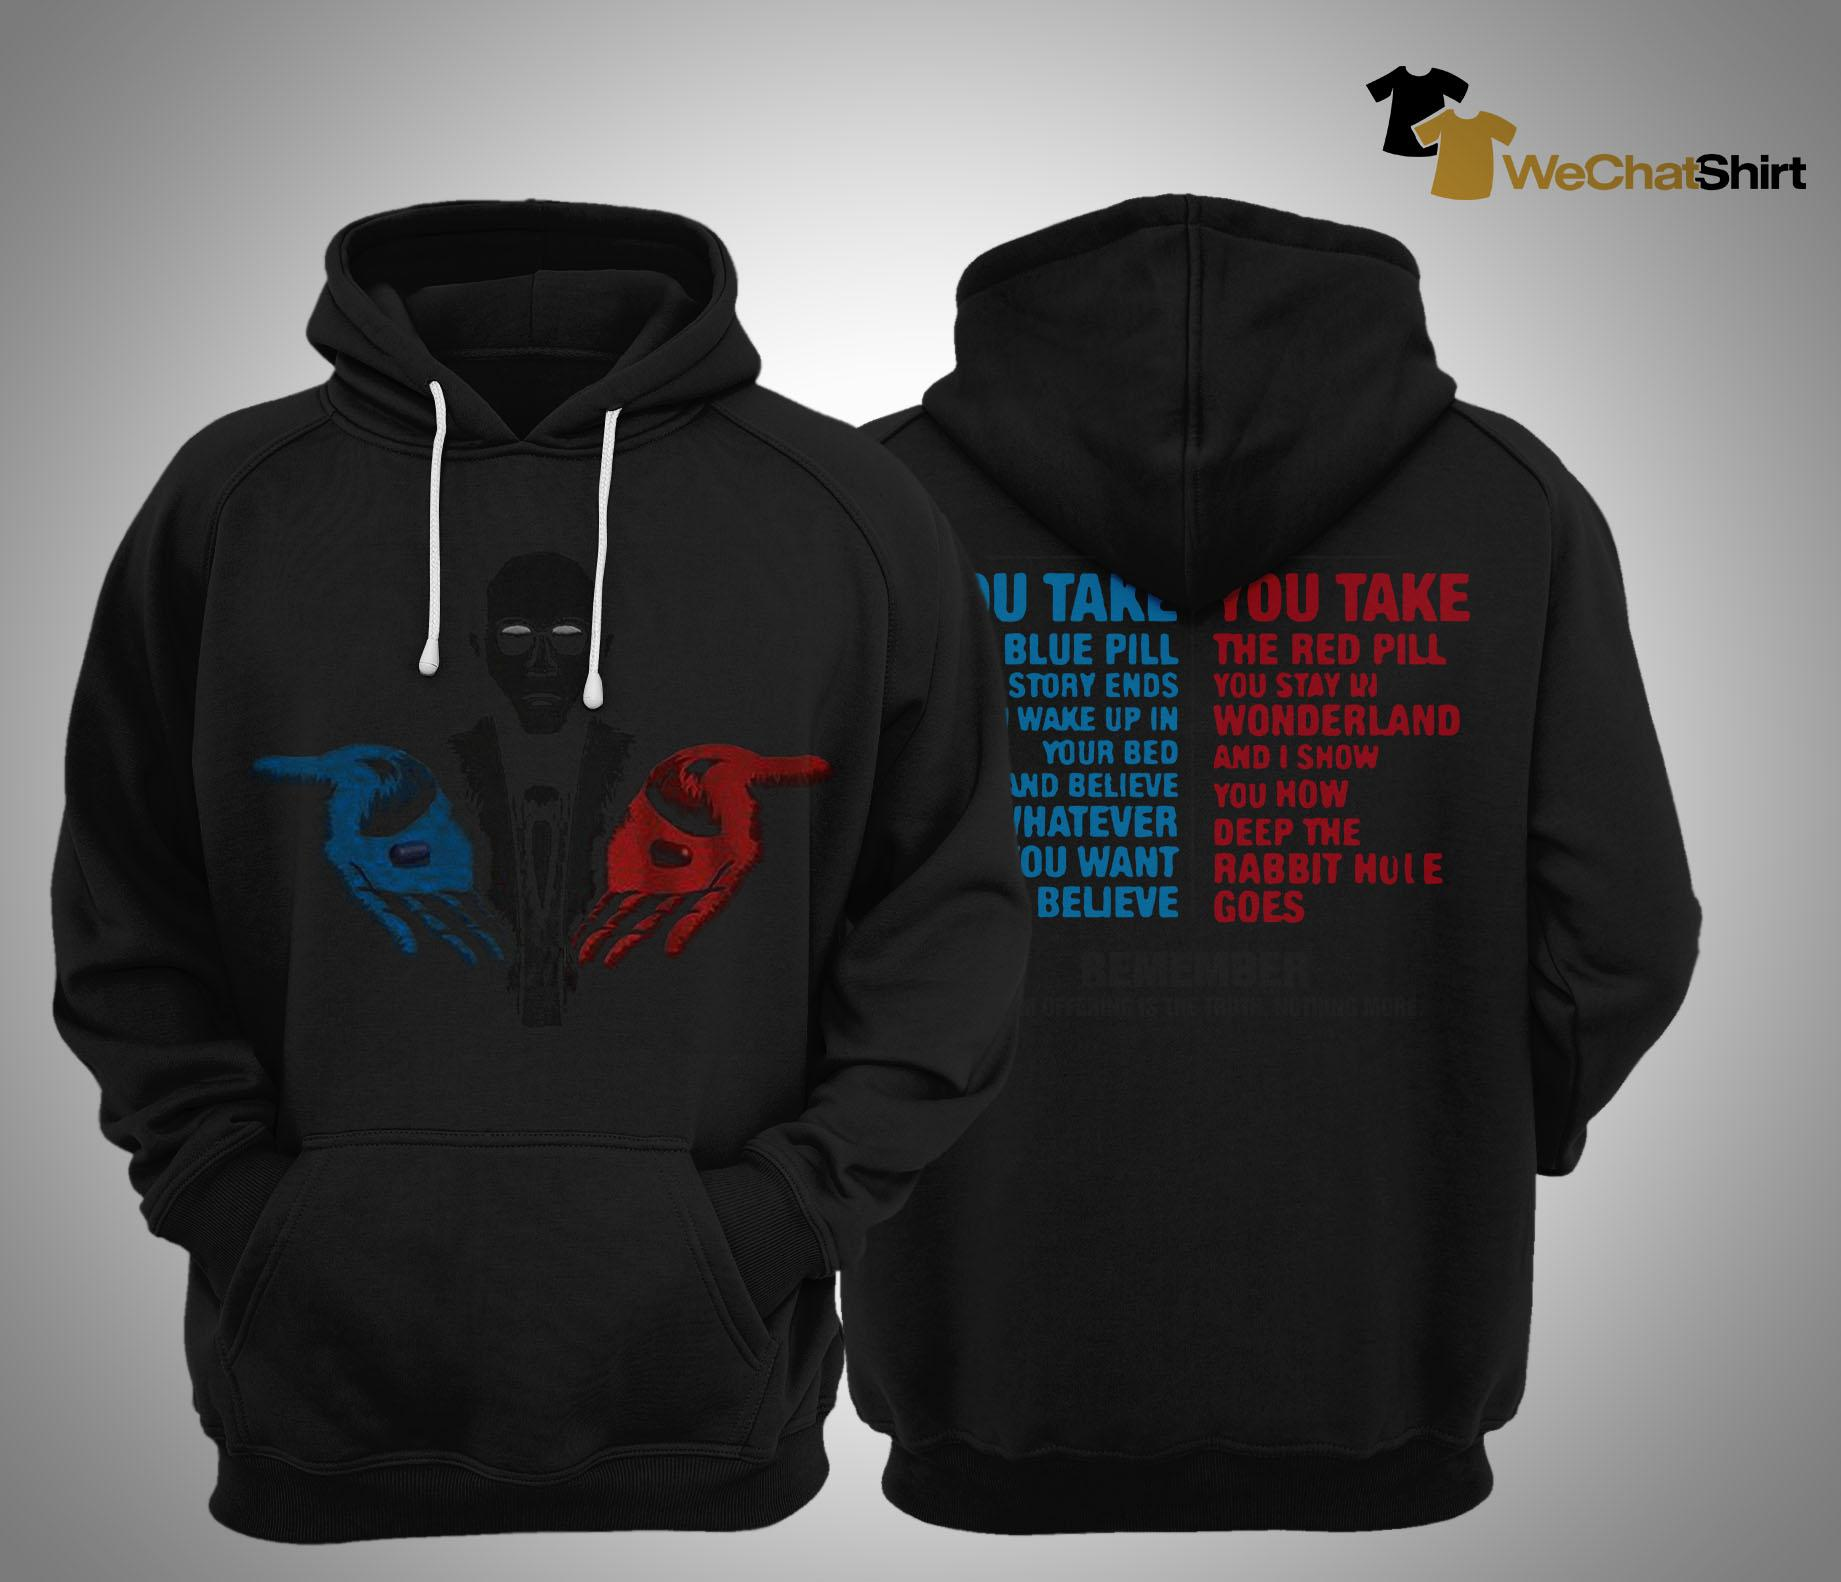 You Take The Blue Bill The Story Ends The Red Pill You Stay In Hoodie